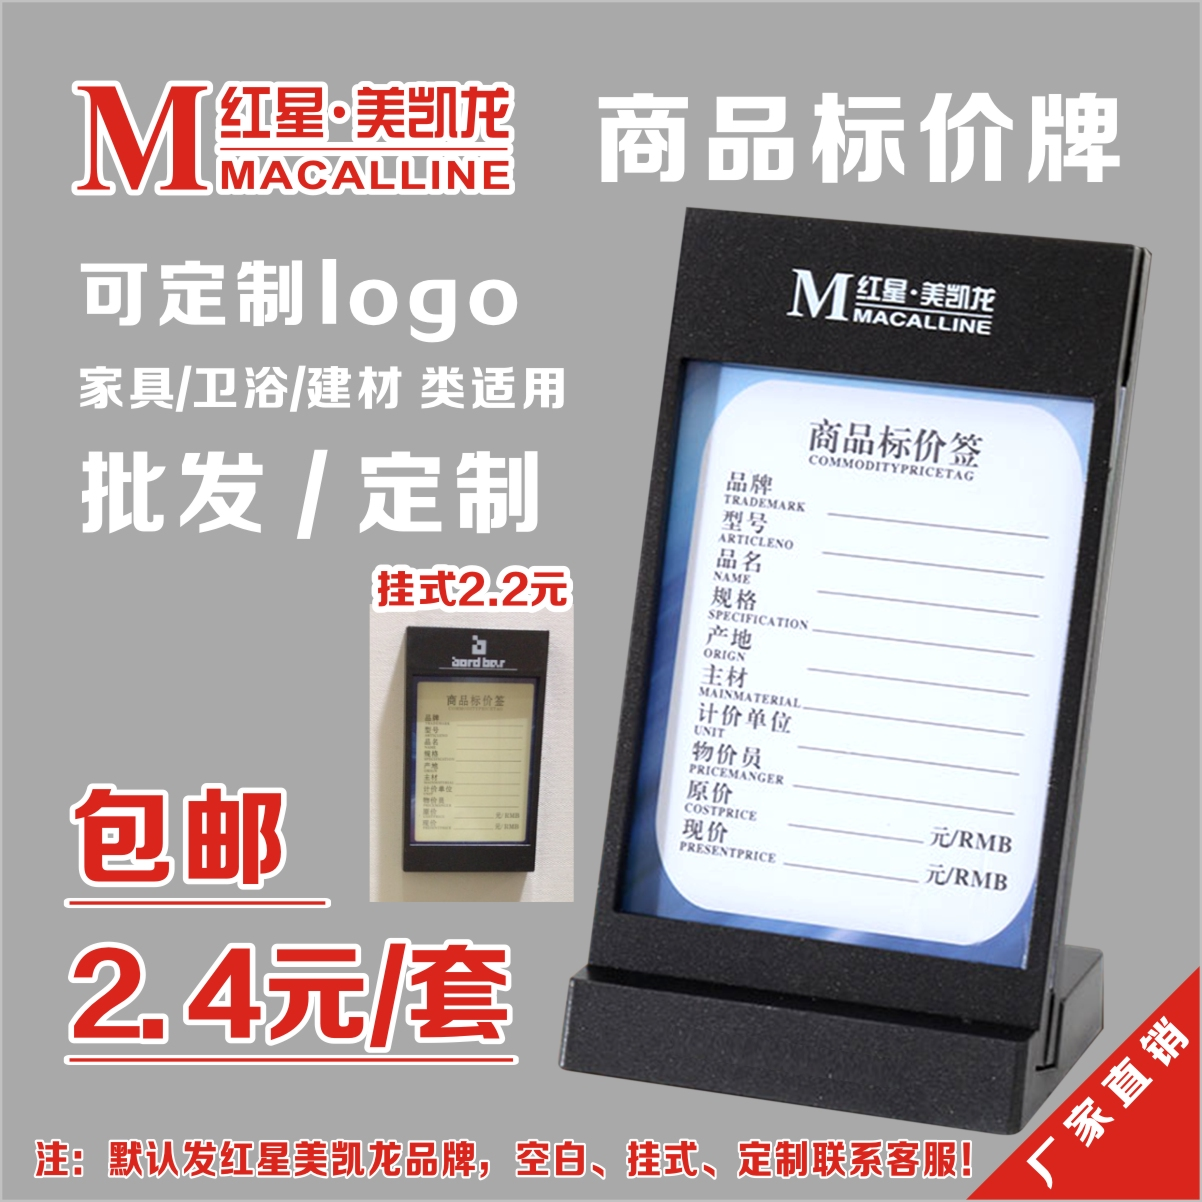 Red Star Mei Kailong price tag shopping mall home price tag bathroom price tag spot can be customized LOGO